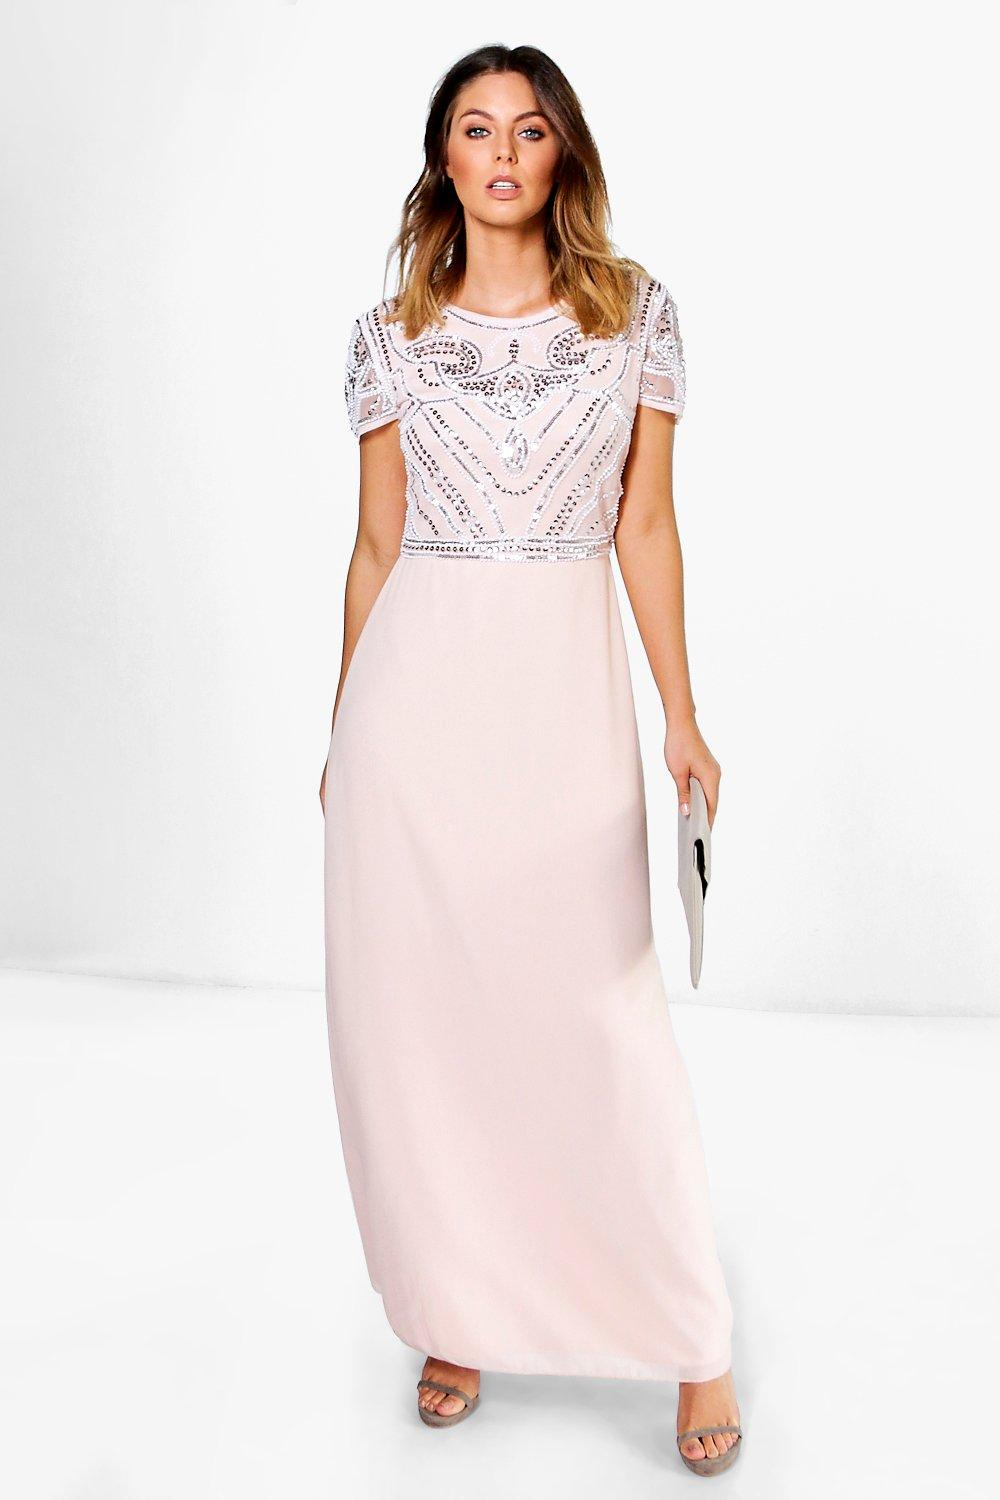 1930s Evening Dresses | Old Hollywood Silver Screen Dresses Womens Boutique Embellished Top Maxi Dress - pink - 14 $28.00 AT vintagedancer.com